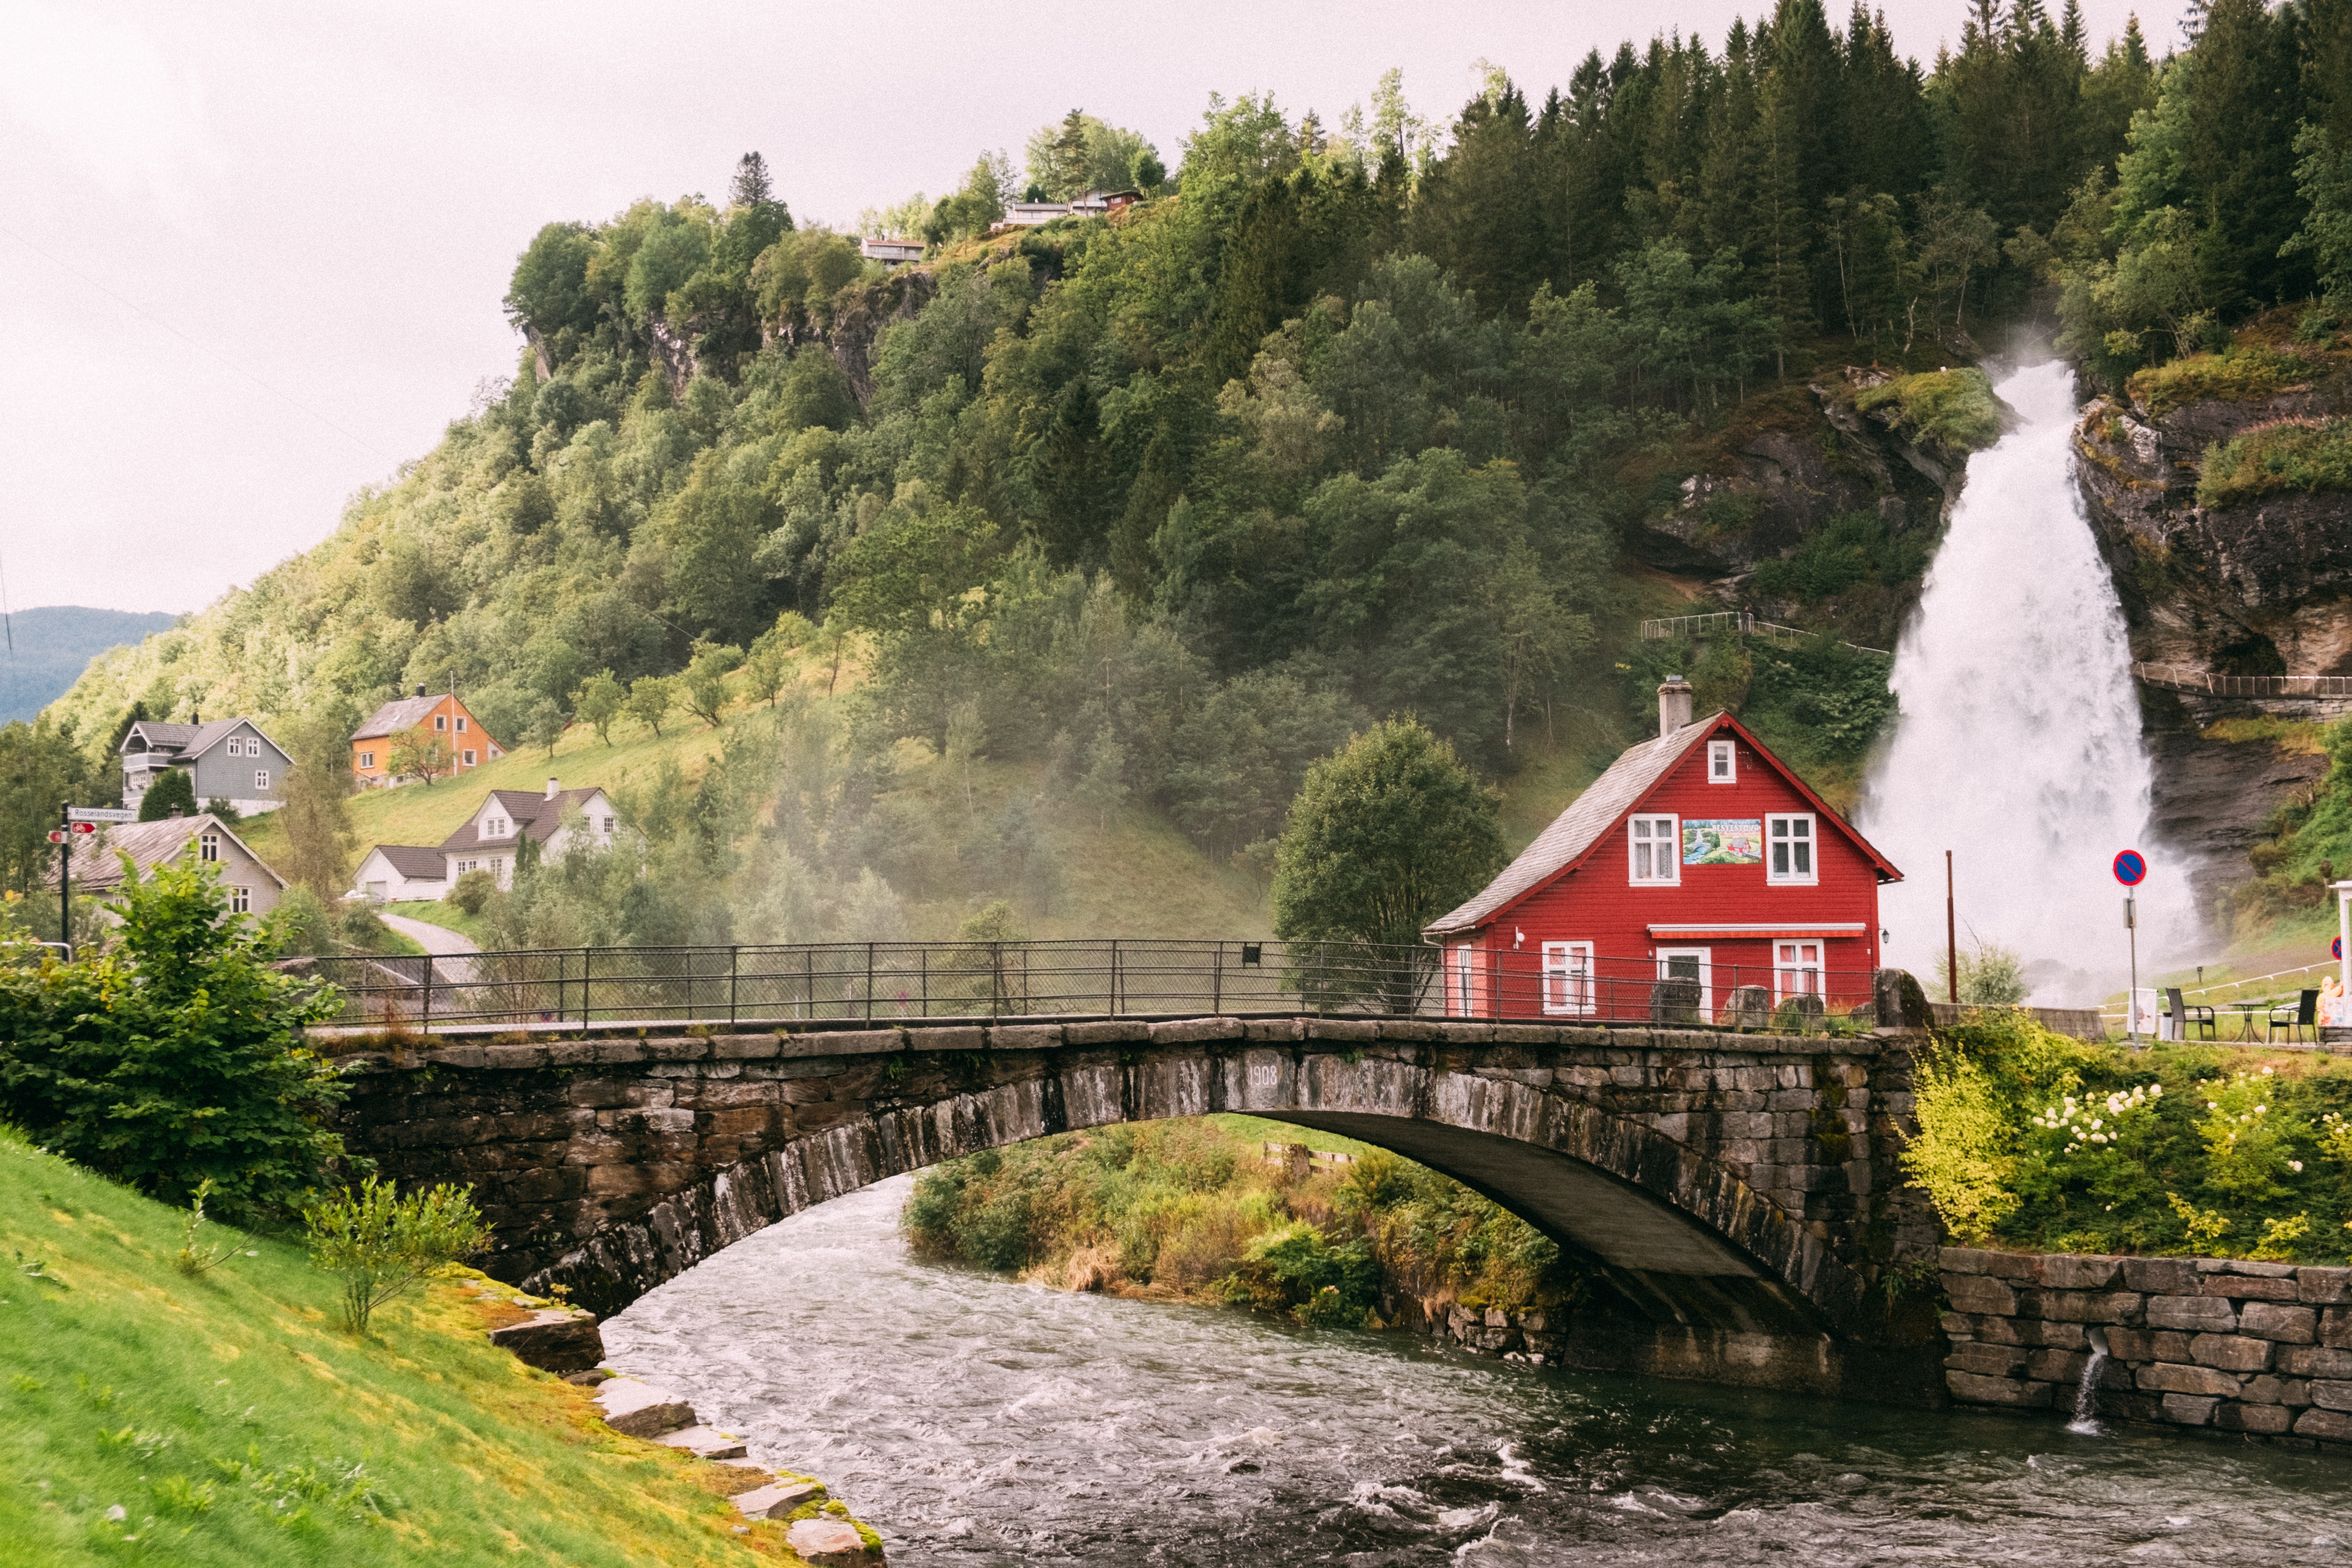 Norway Unsplash waterfall red house